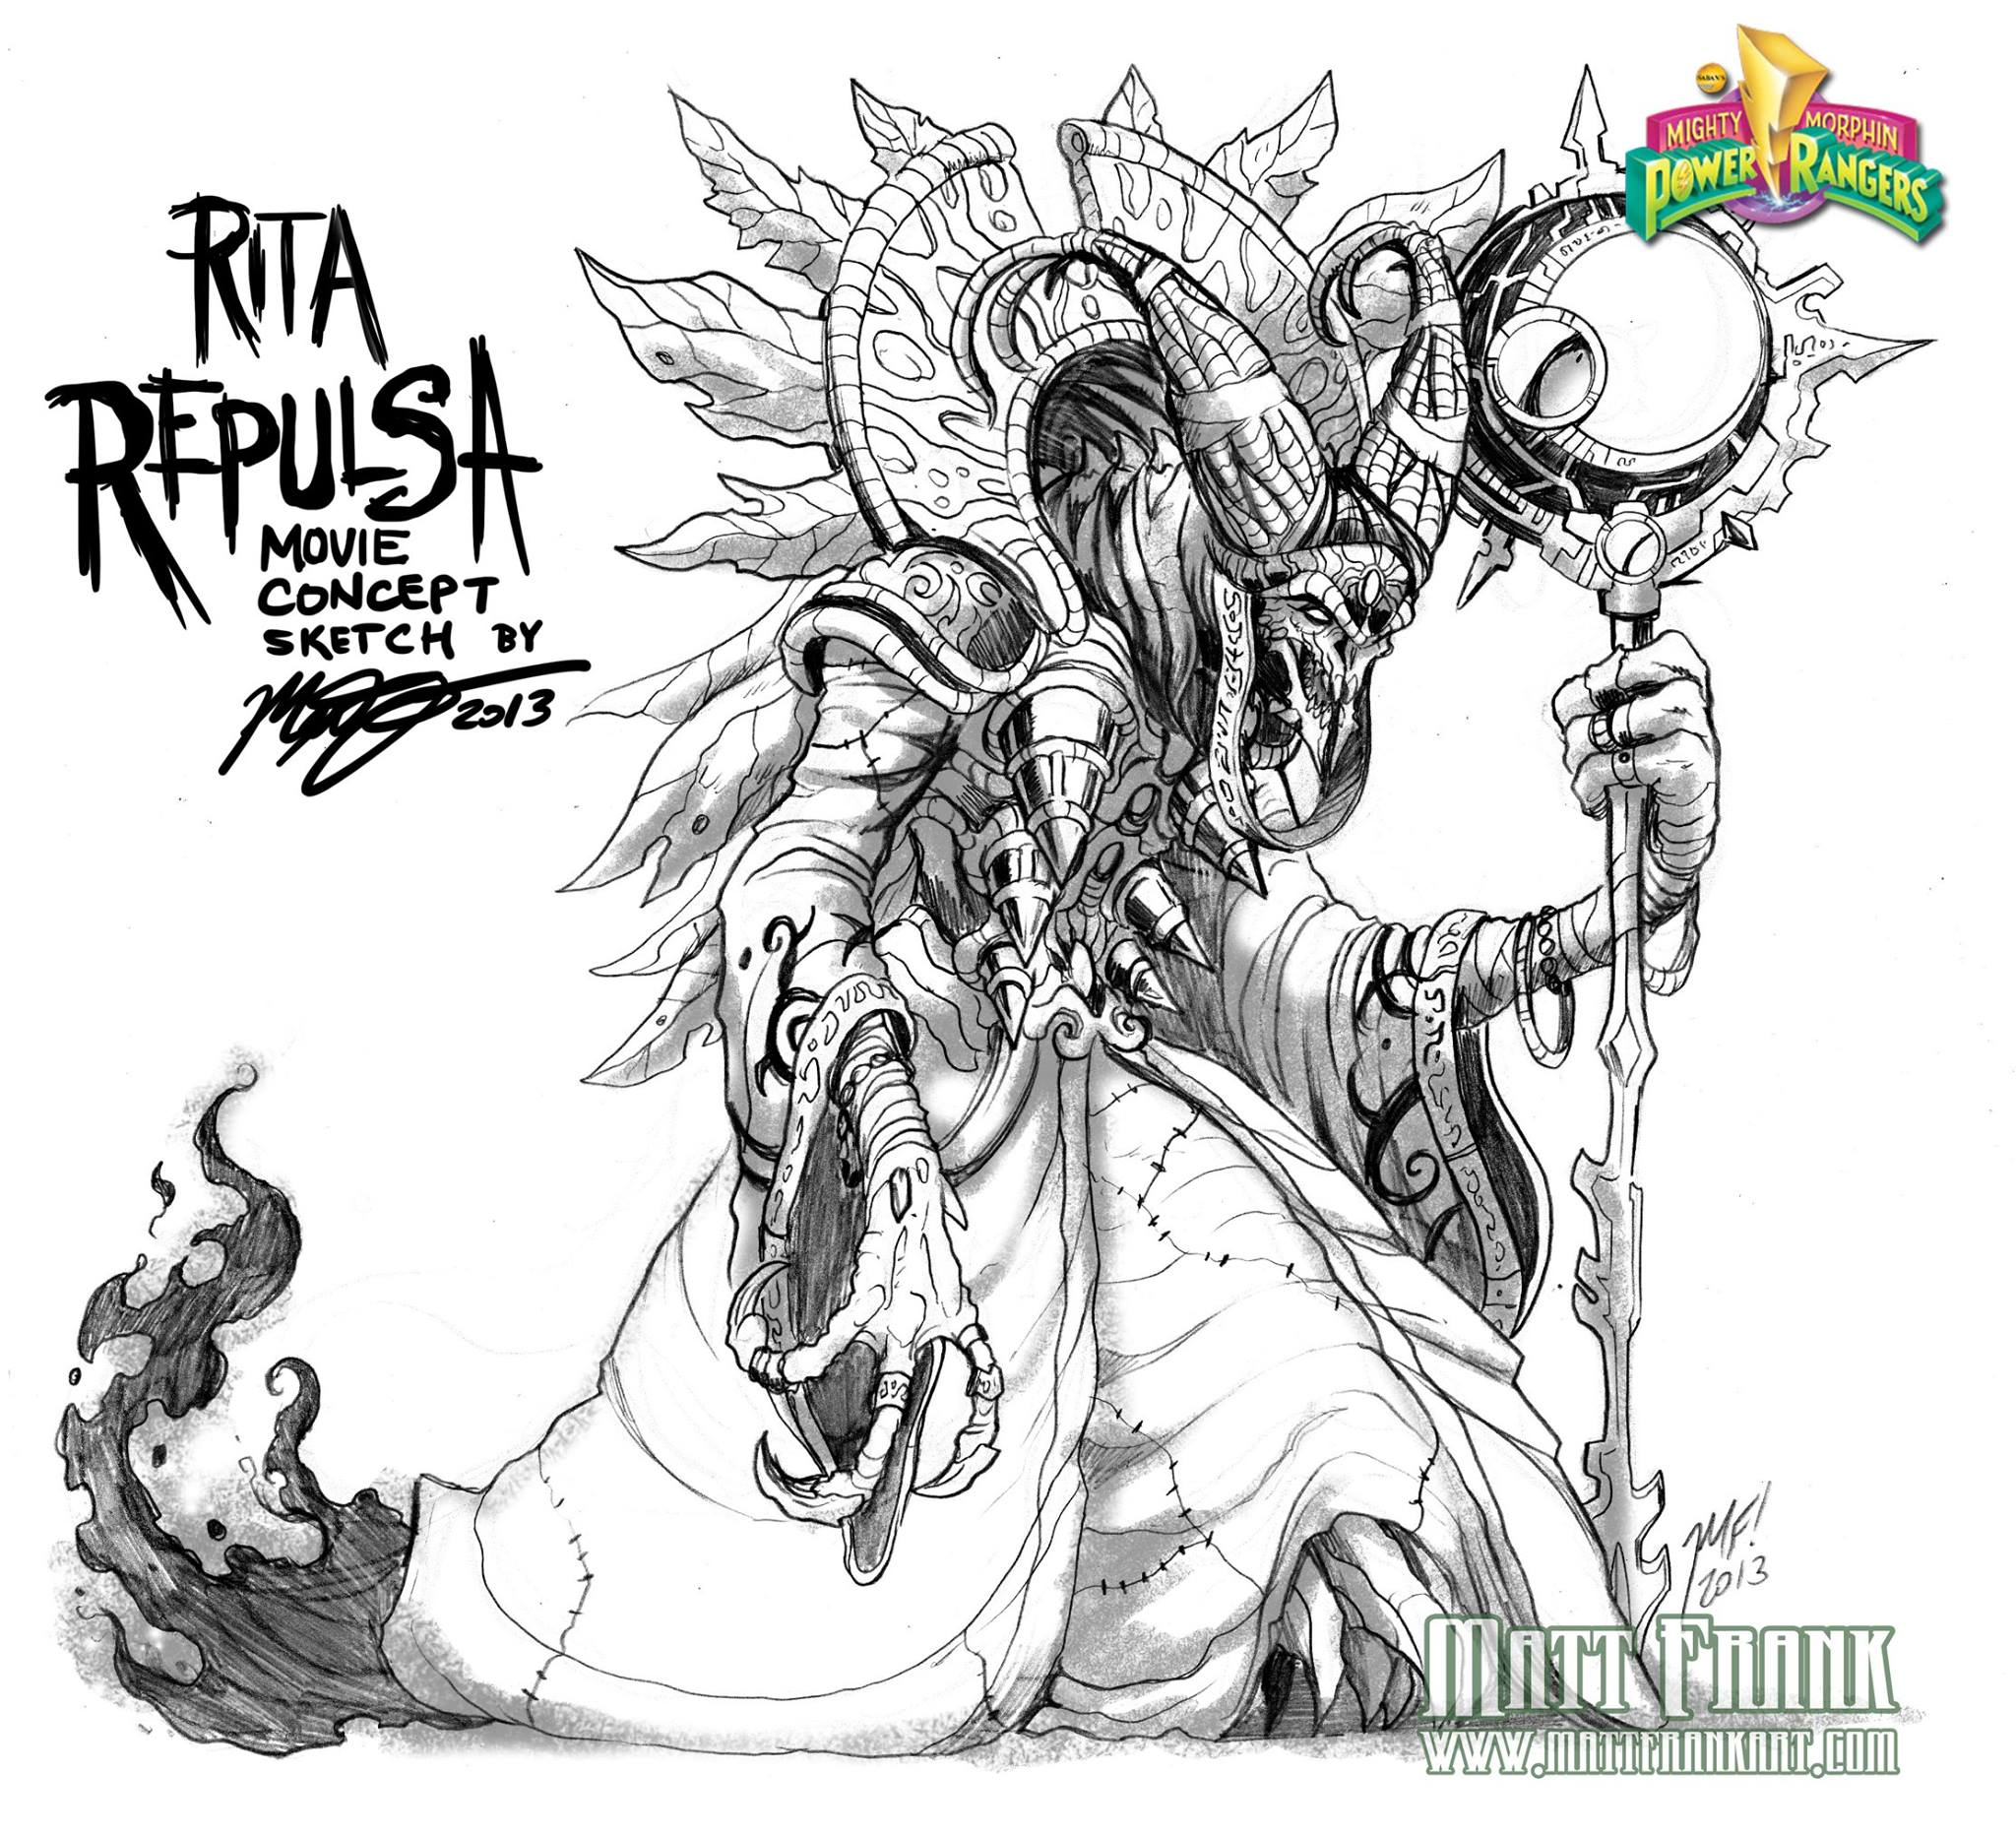 Concept Art From Canned Power Rangers Movie Unveils A Very Different Rita Repulsa